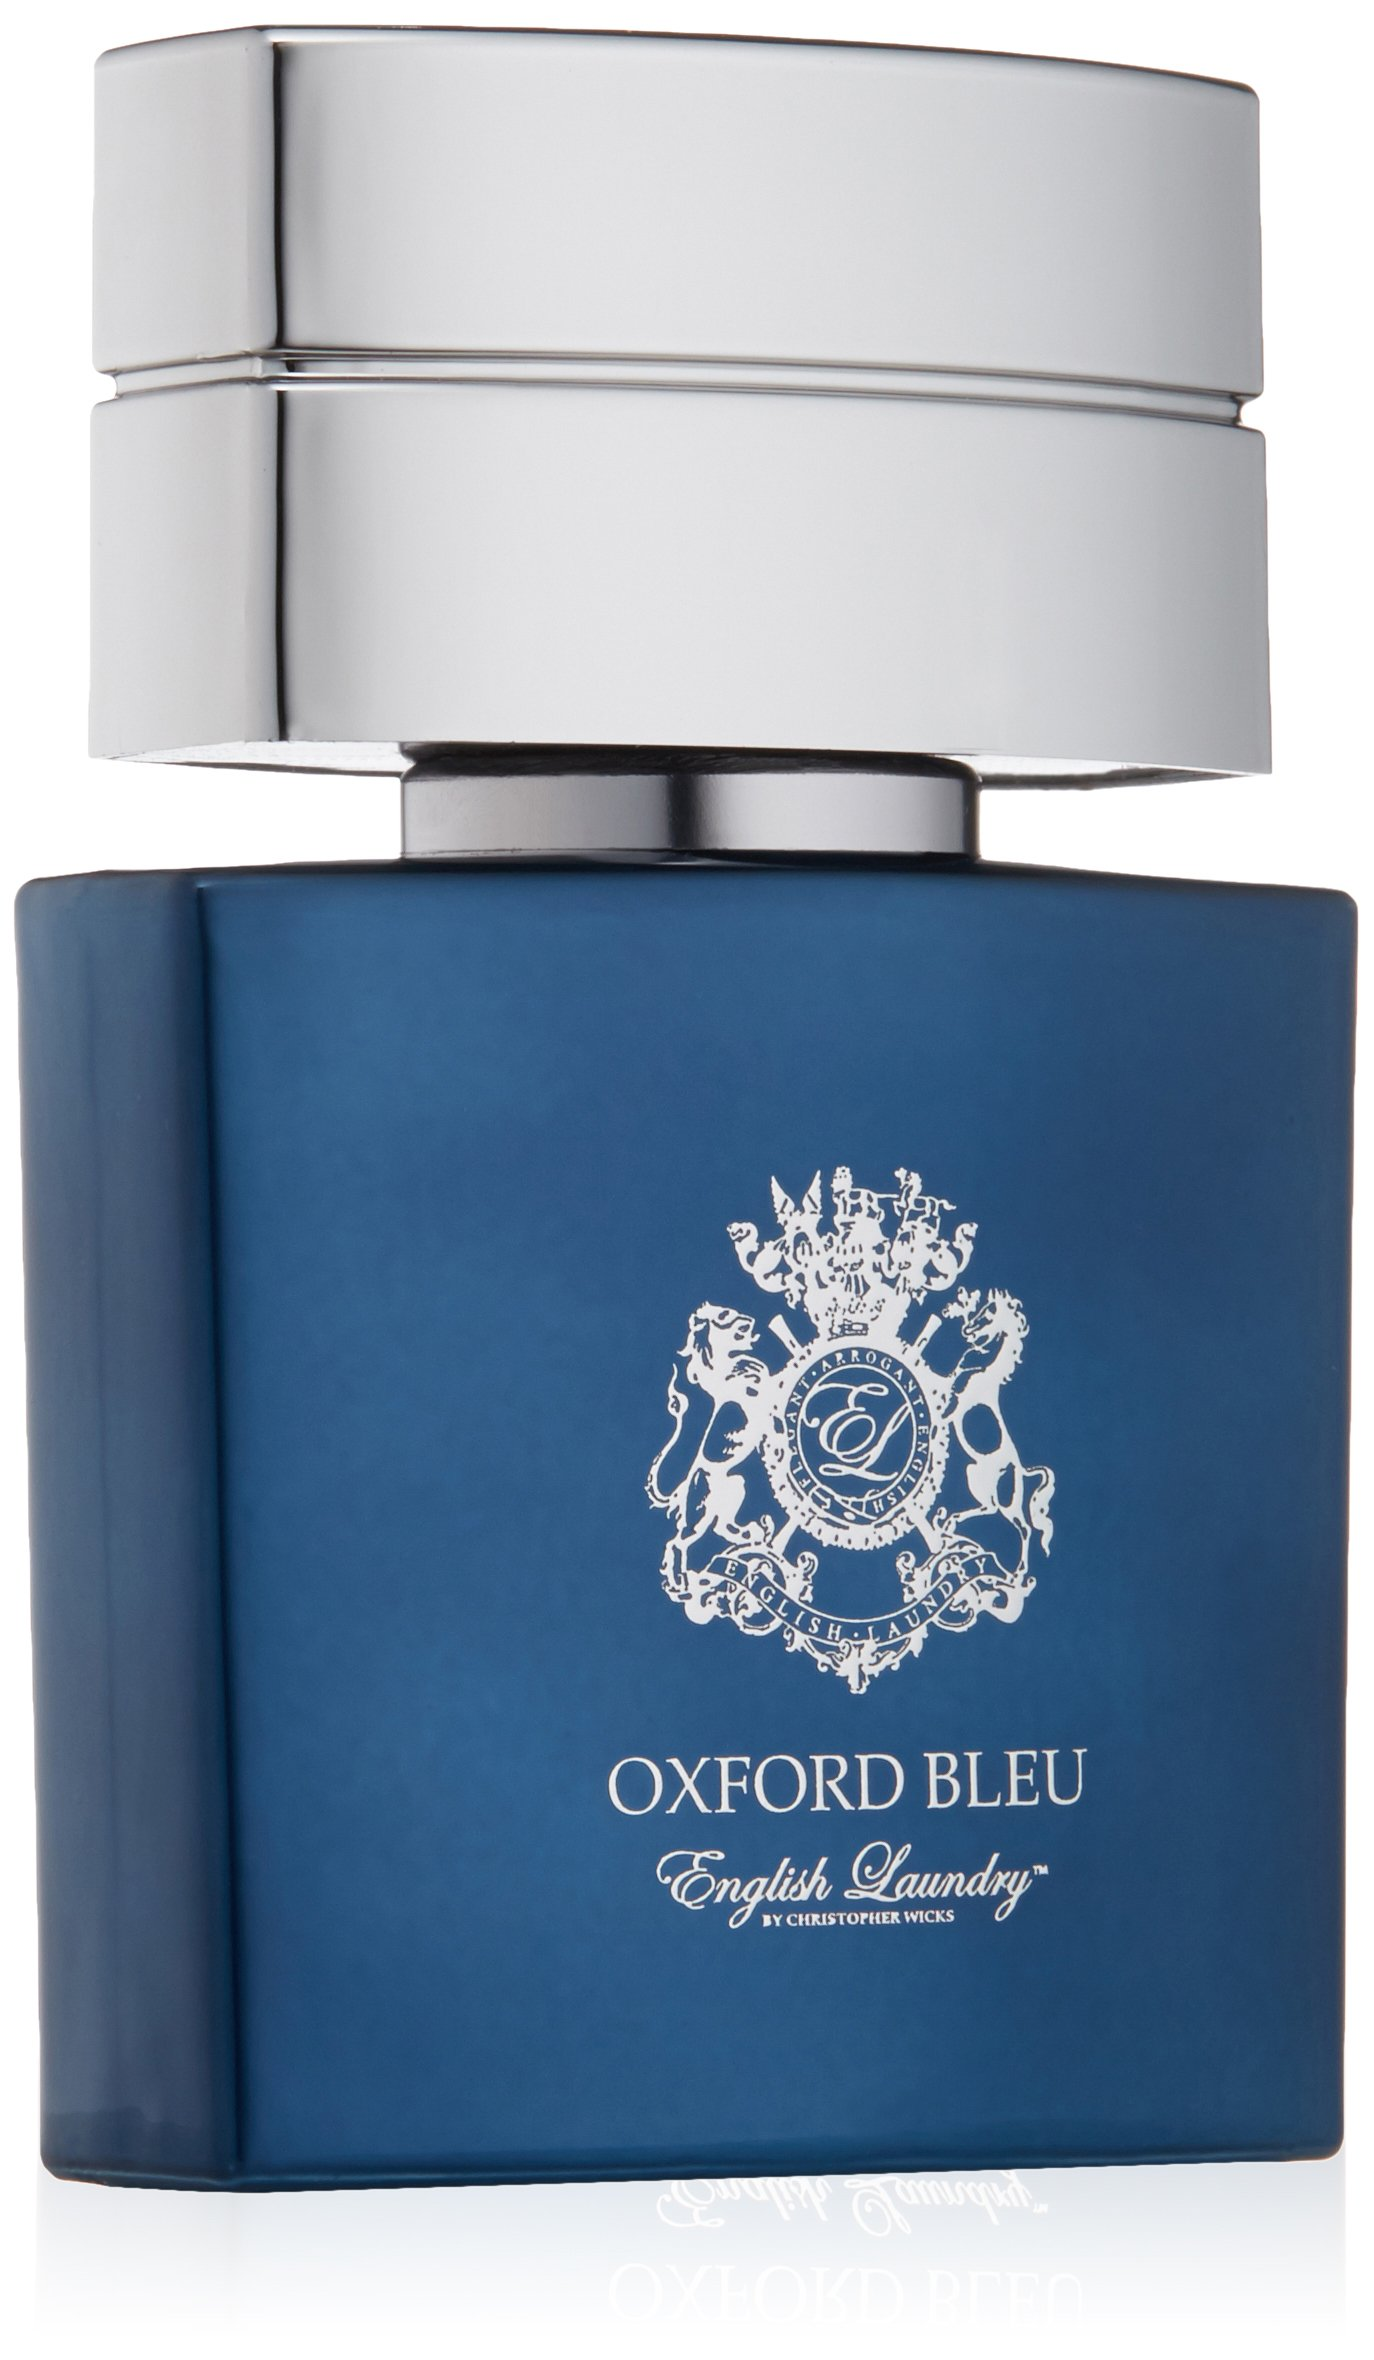 English Laundry Oxford Bleu Eau de Parfum, 0.68 oz.